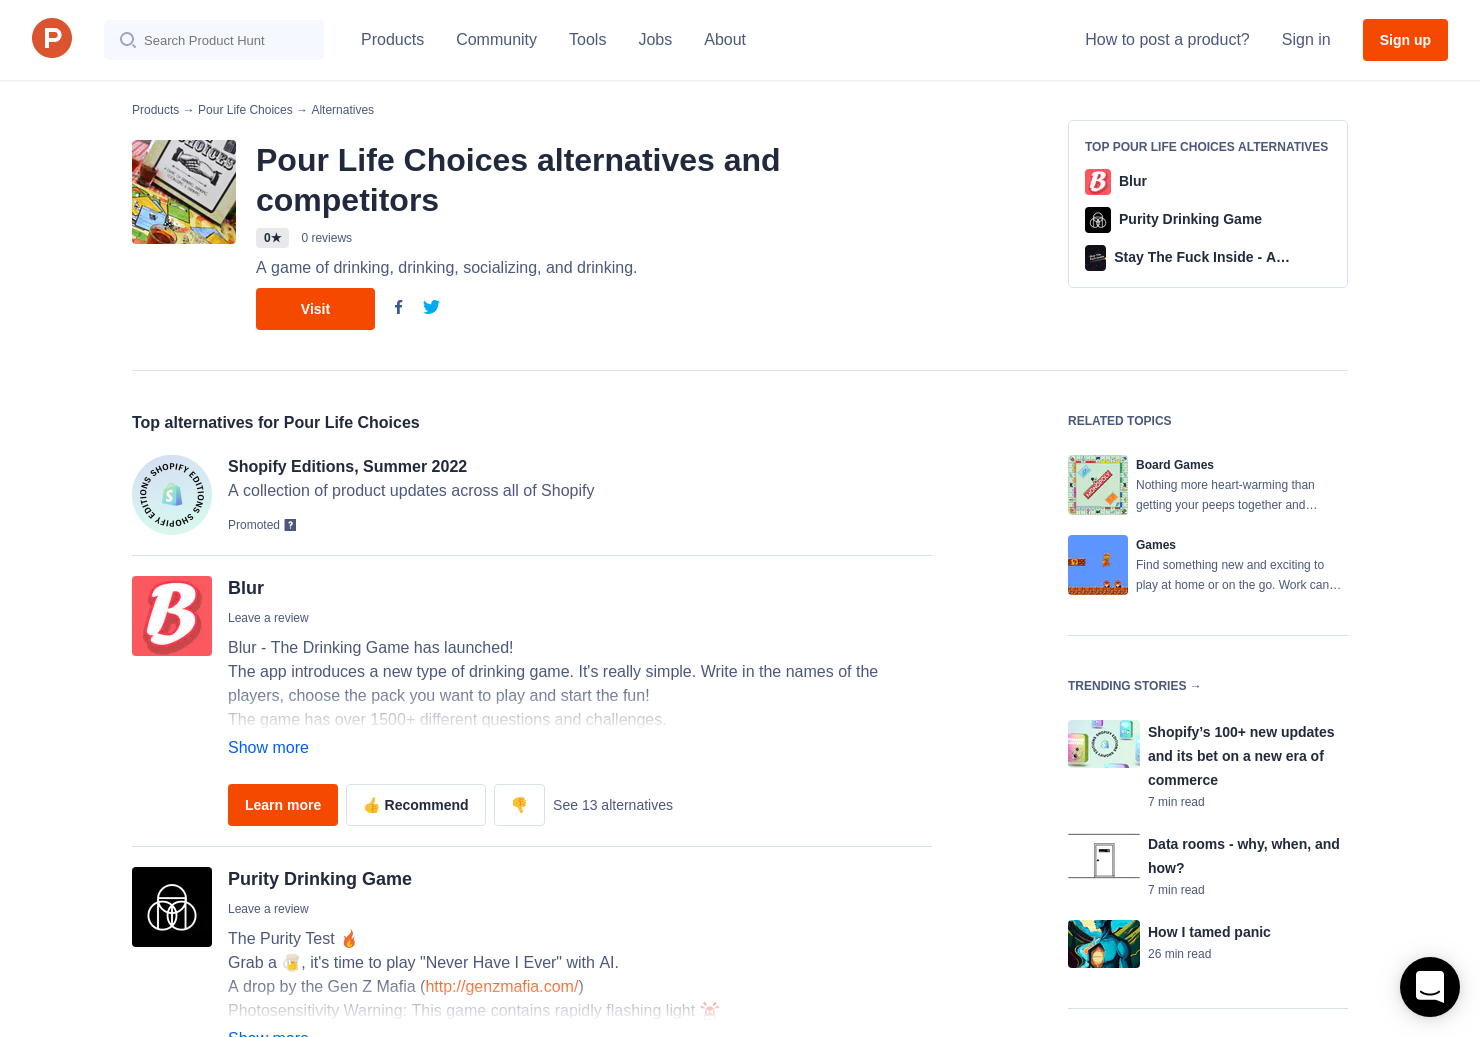 3 Alternatives to Pour Life Choices   Product Hunt